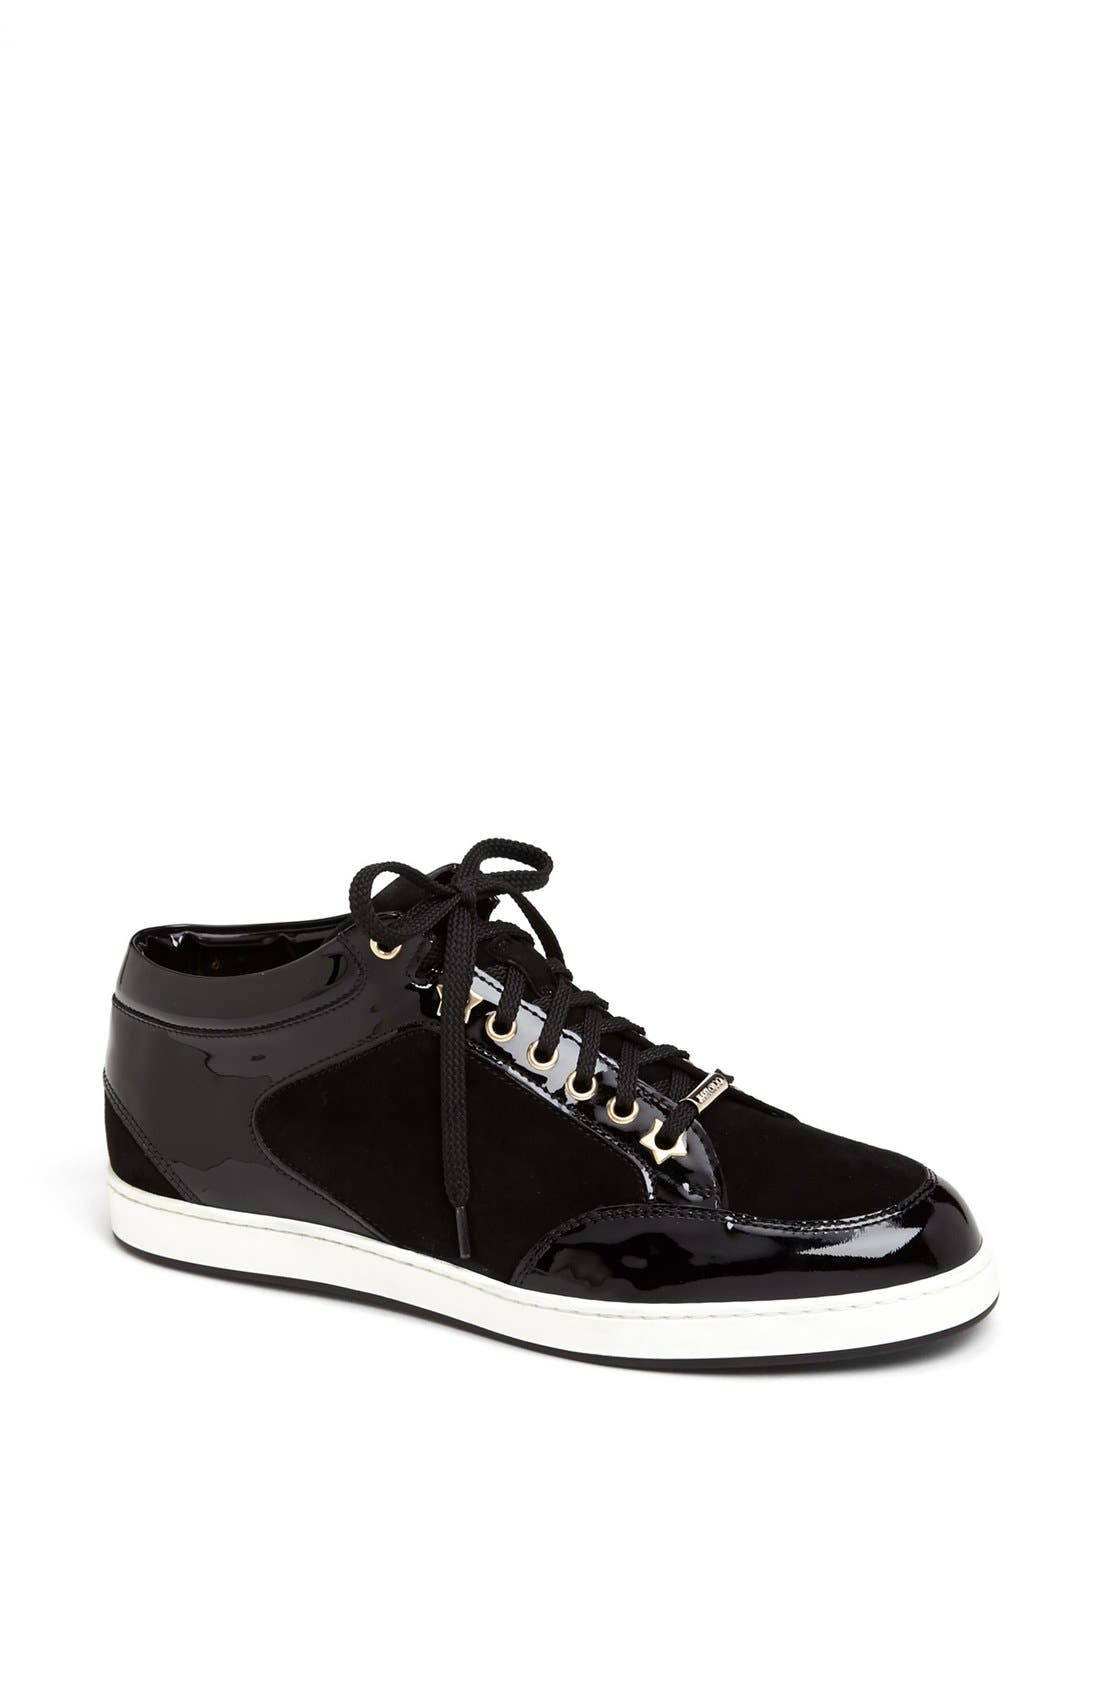 Alternate Image 1 Selected - Jimmy Choo 'Miami' Sneaker